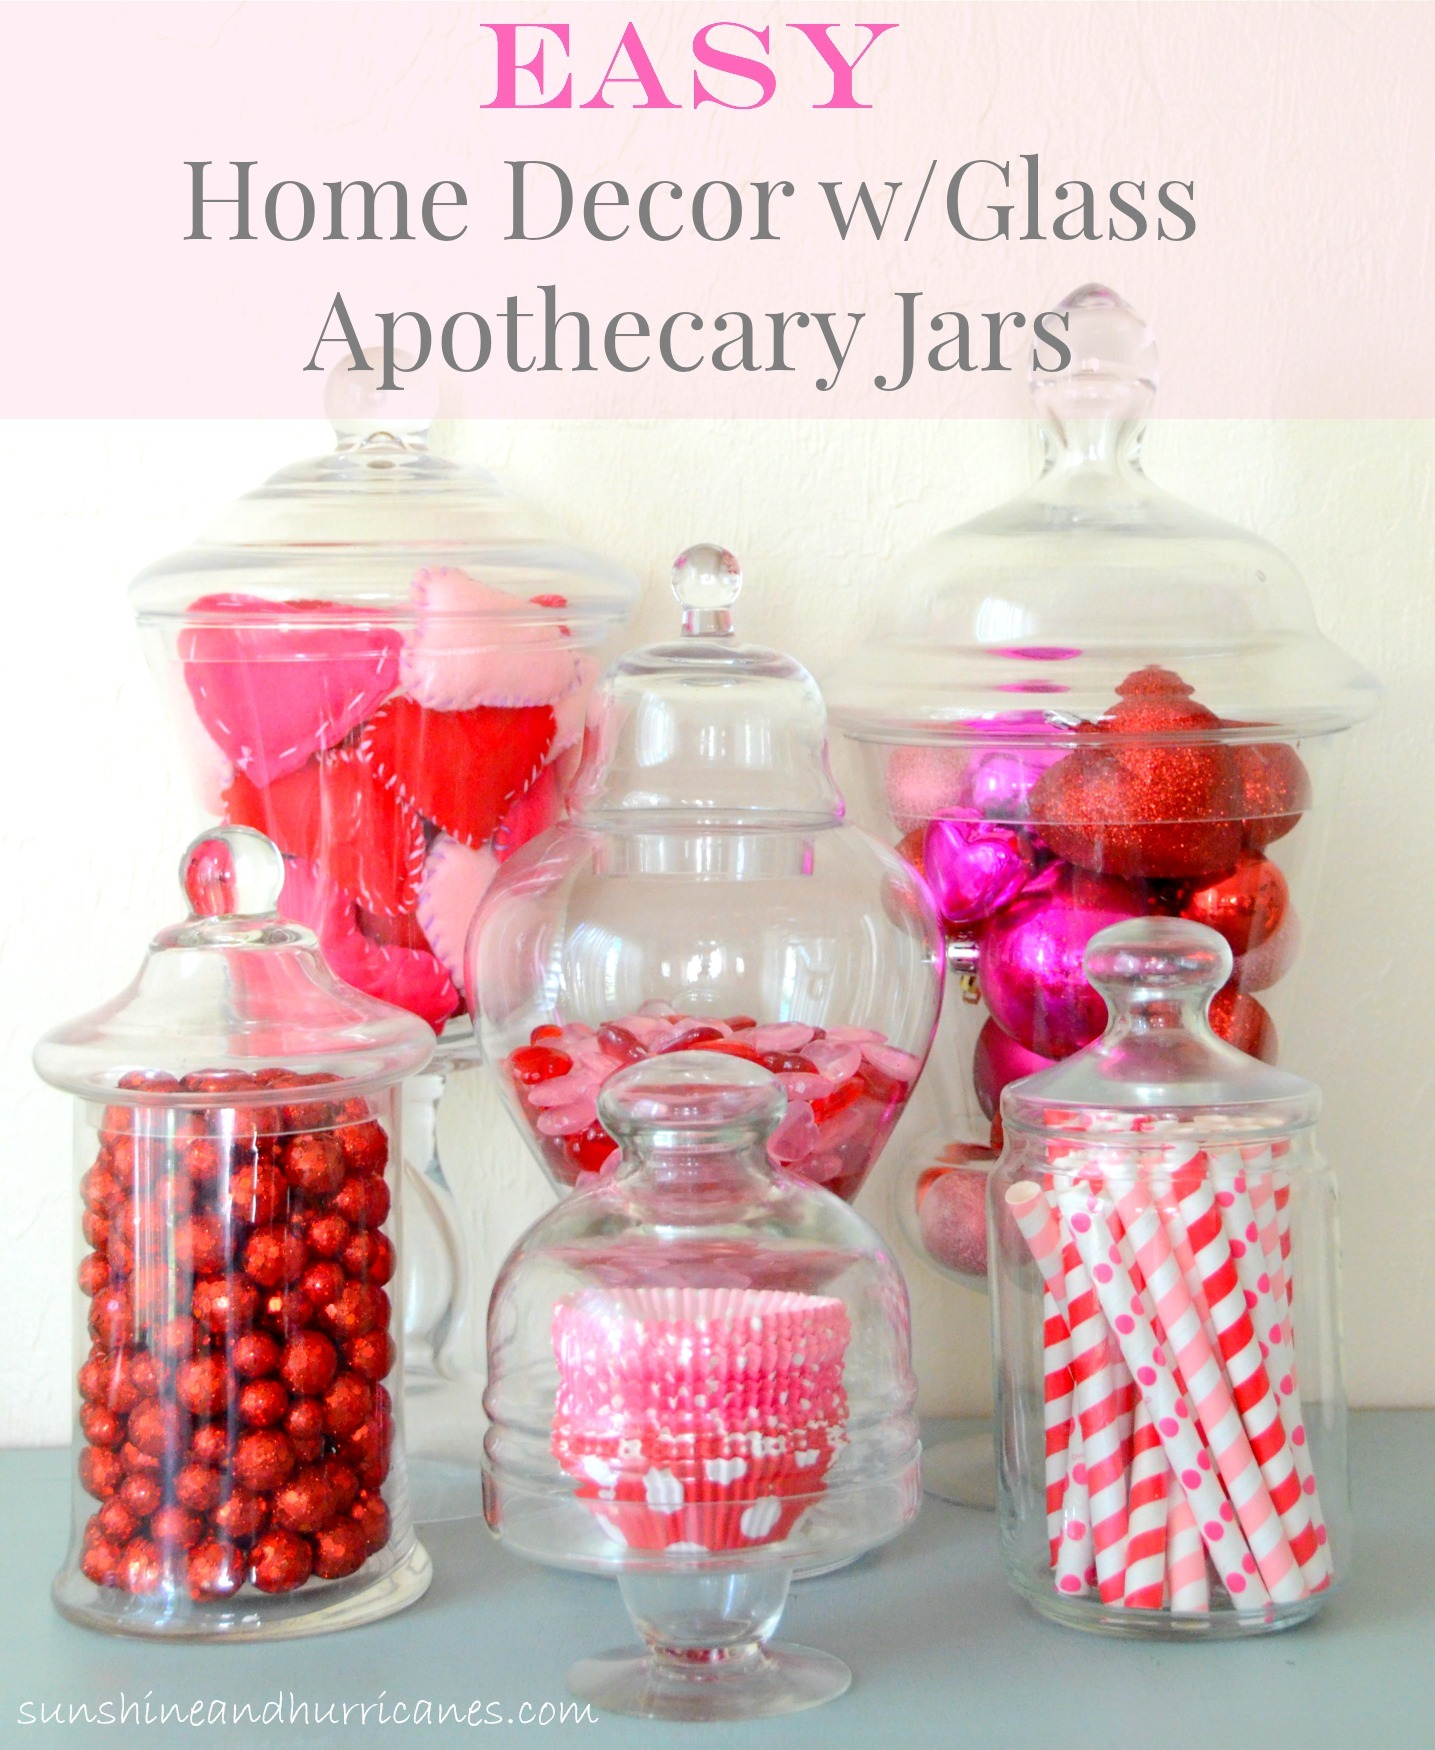 Easy Home Decor with Glass Apothecary Jars